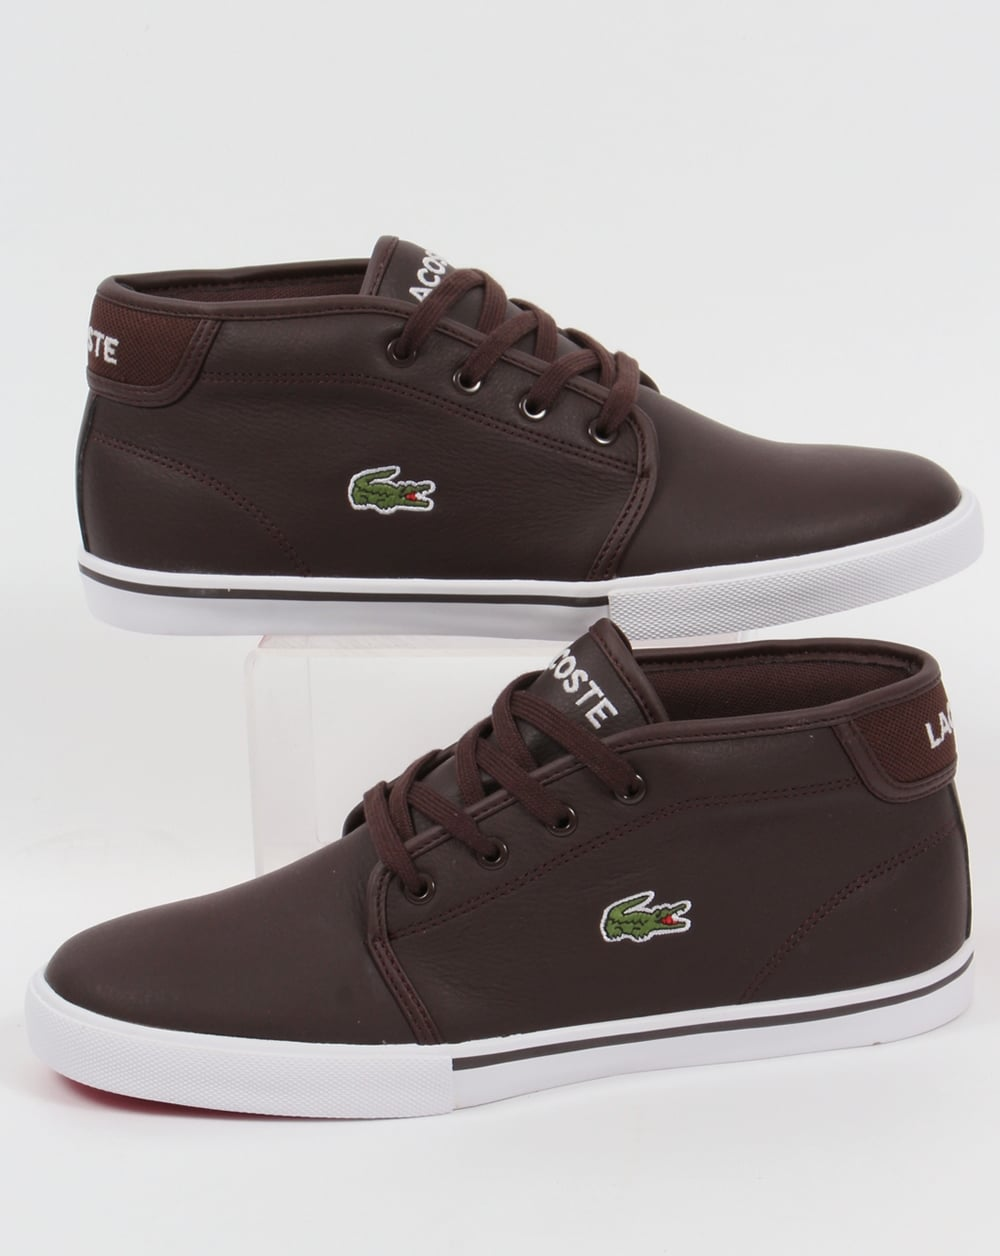 Lacoste Menswear - Lacoste Ampthill Leather Shoes Brown